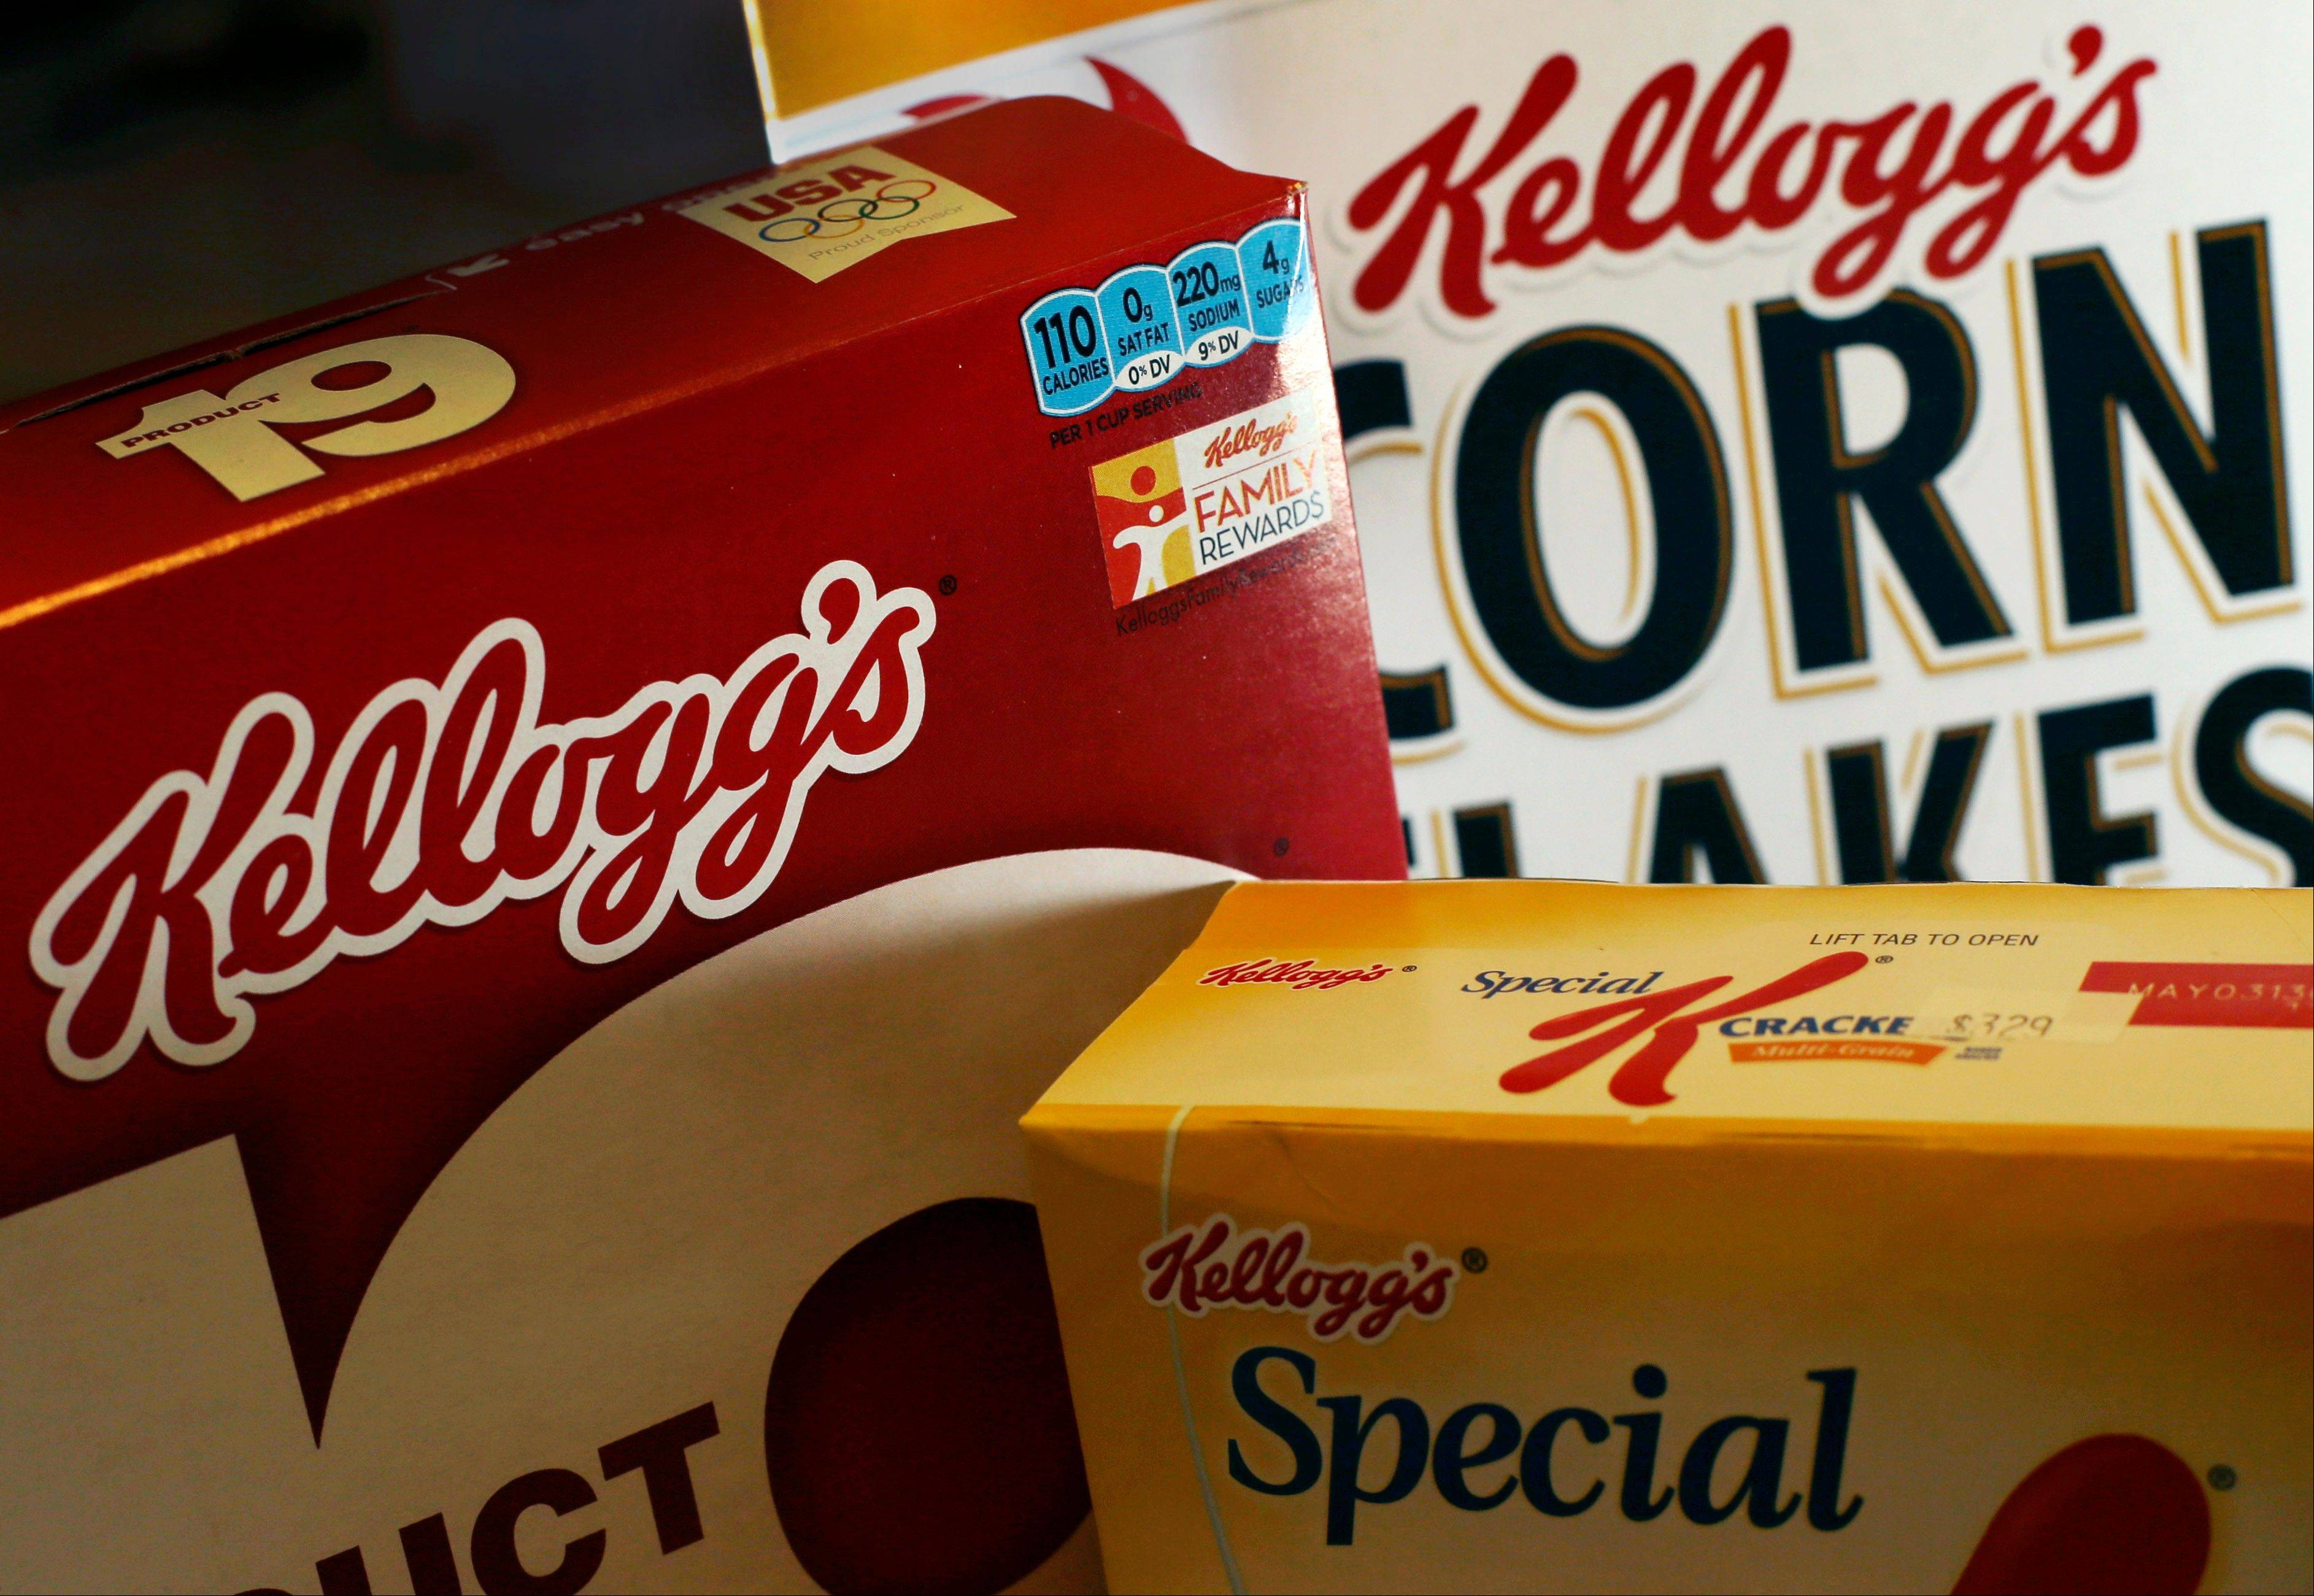 Kellogg�s appetite for salty snacks is helping fatten its profits. The world�s biggest cereal maker, best known for its Frosted Flakes, Pop-Tarts and Eggo waffles, says its recent acquisition of Pringles chips boosted its net income in the third quarter. Kellogg, based in Battle Creek, Mich., bought the brand earlier this year in hopes of becoming a global player in the salty snacks market.